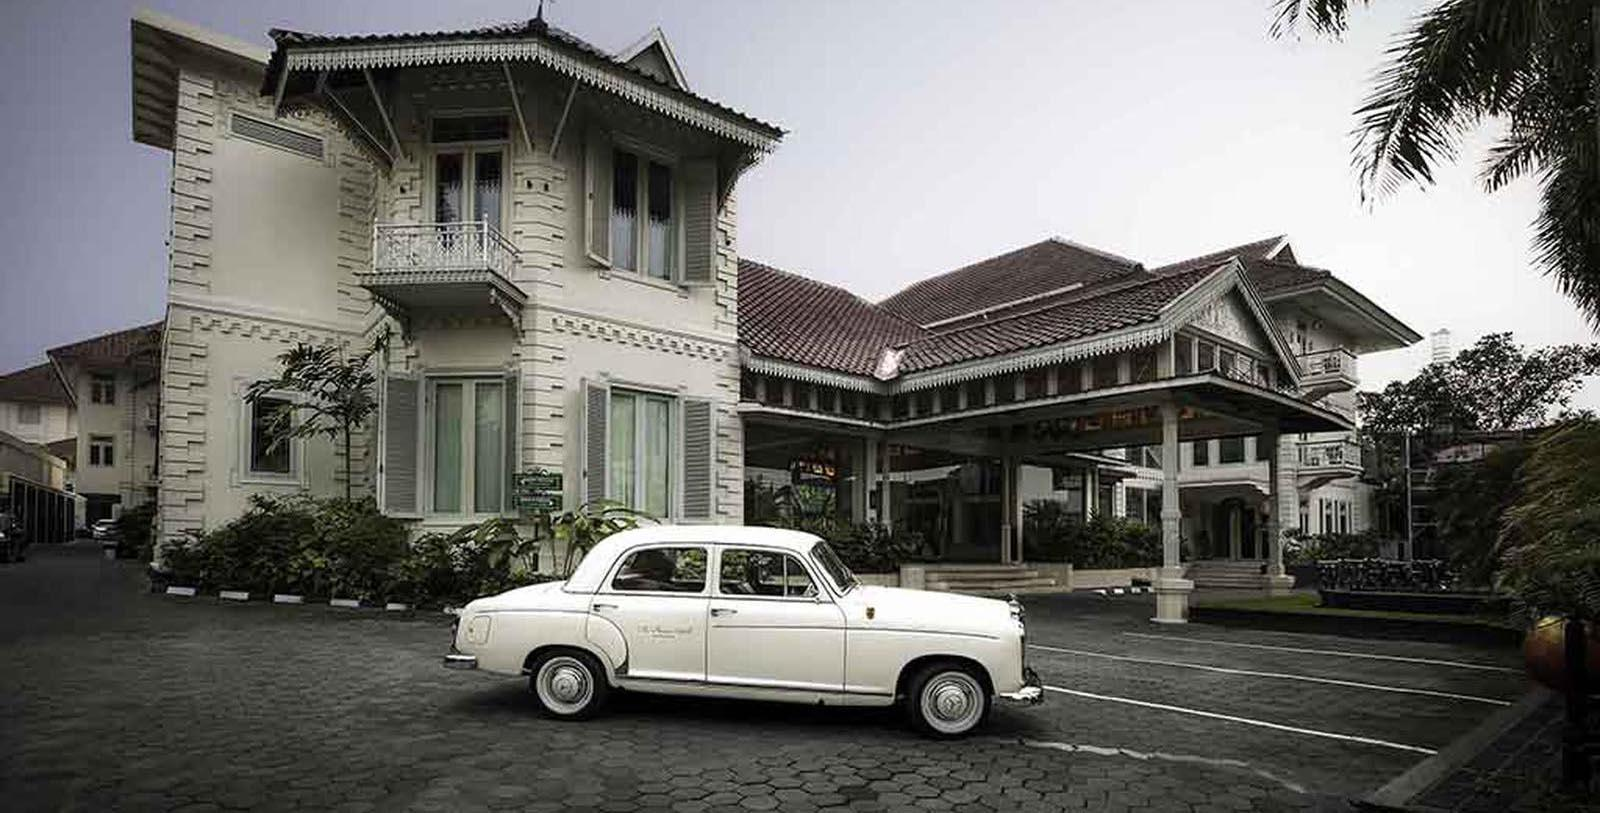 Historic Image of Hotel Front Entrance at The Phoenix Hotel Yogyakarta - MGallery by Sofitel, 1928, Member of Historic Hotels Worldwide, in Yogyakarta, Indonesia, Discover